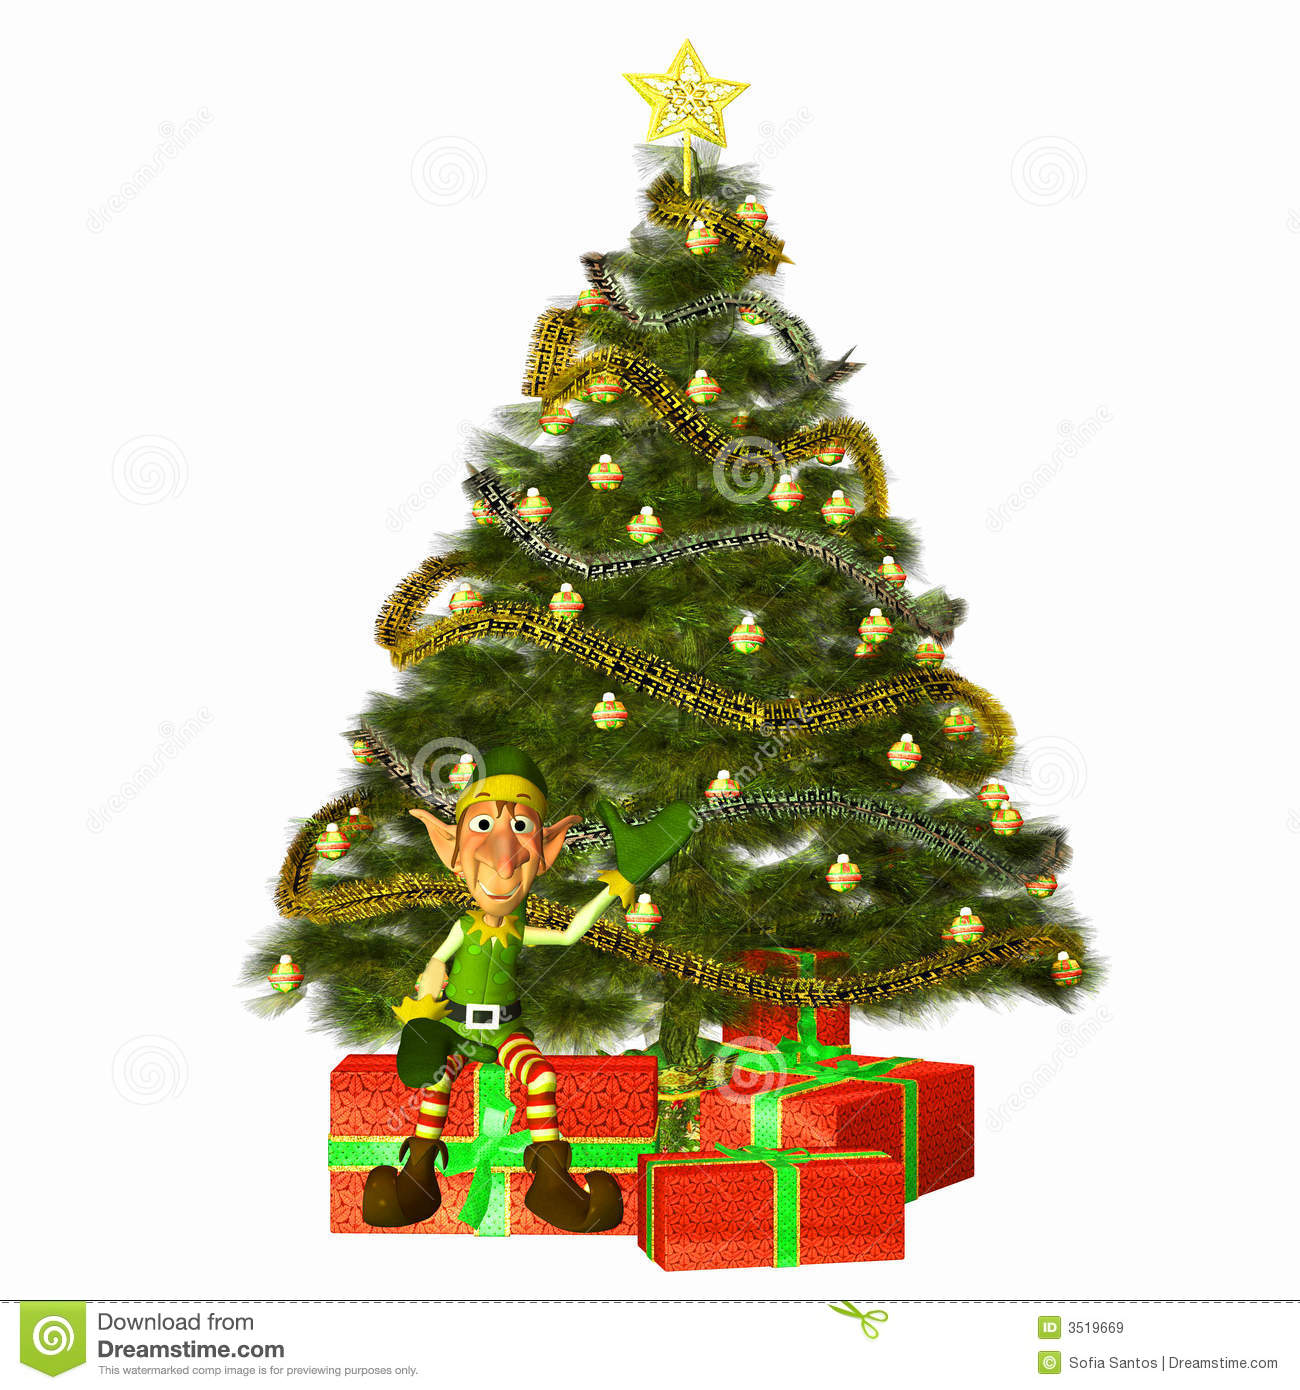 Elf with Presents and Tree